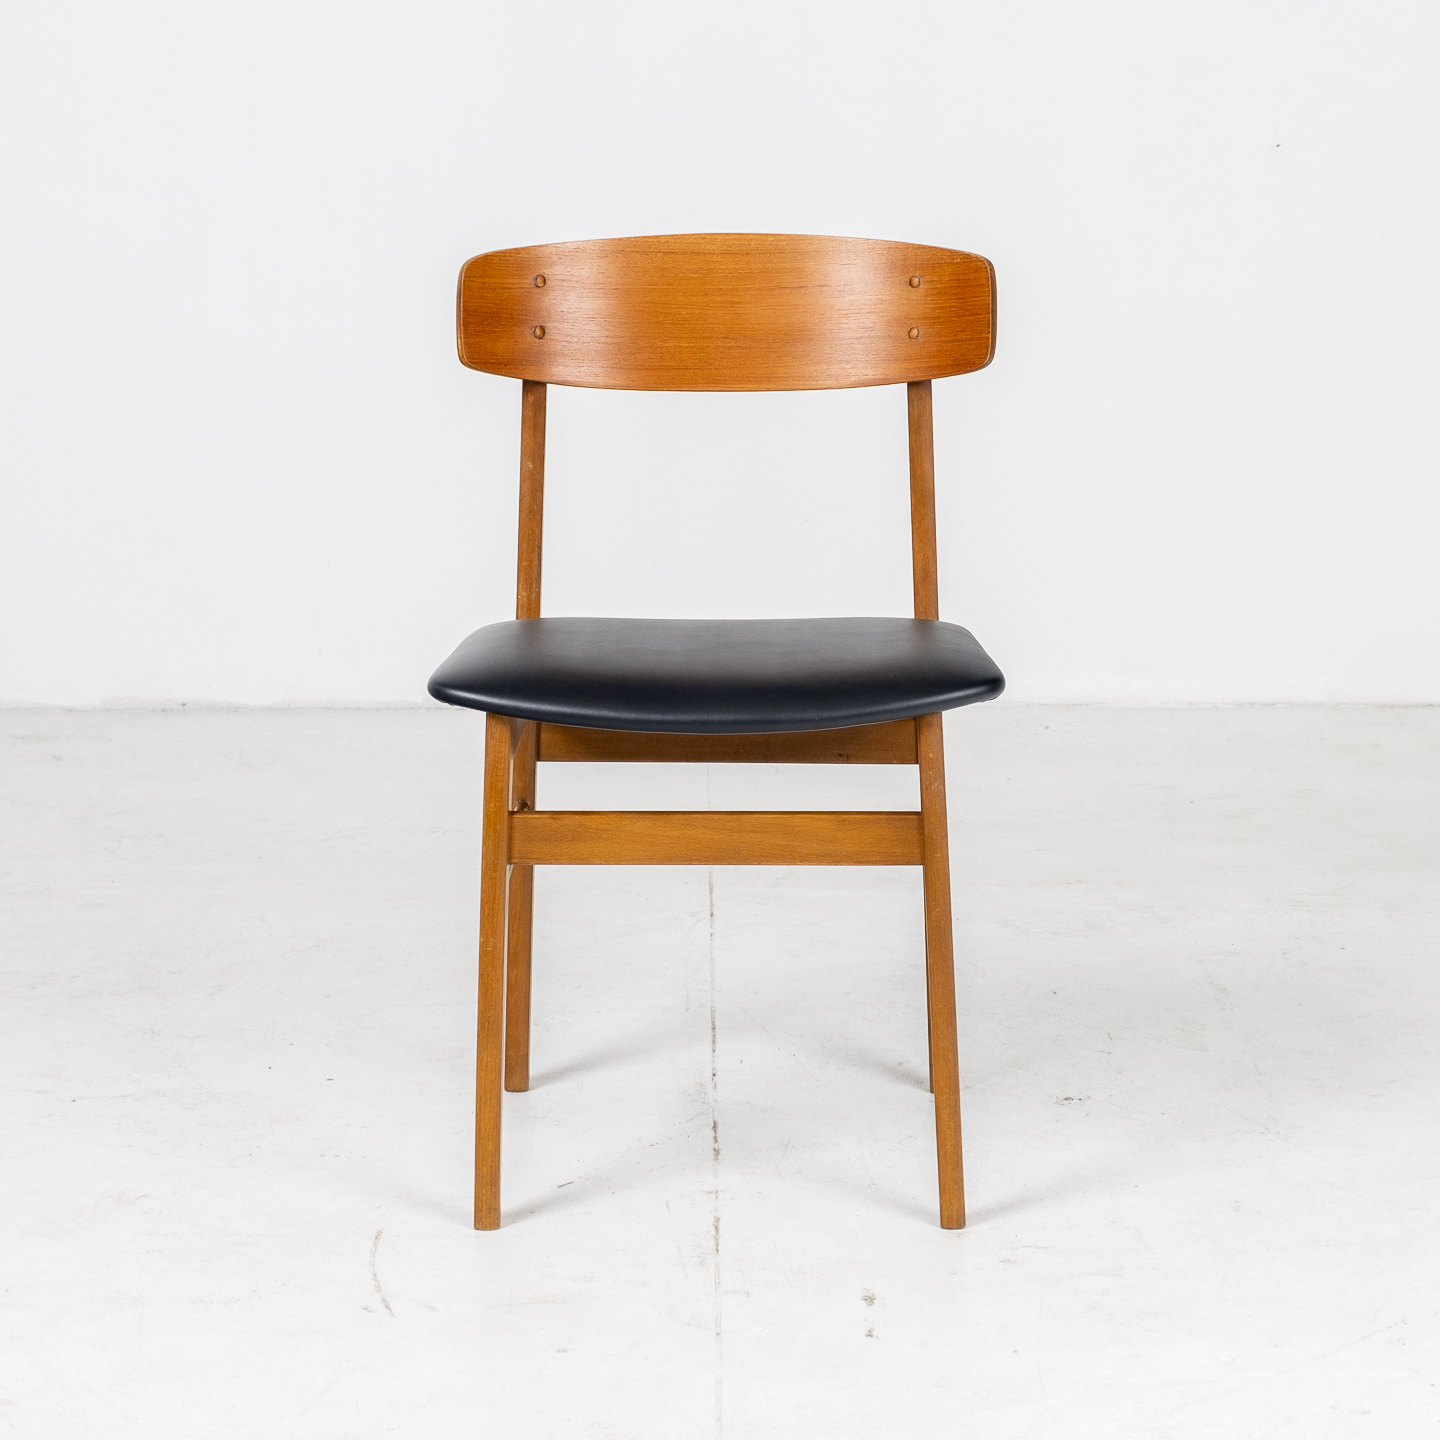 Set Of Four Square Back Dining Chairs By Fastrup In Teak, 1960s, Denmark01